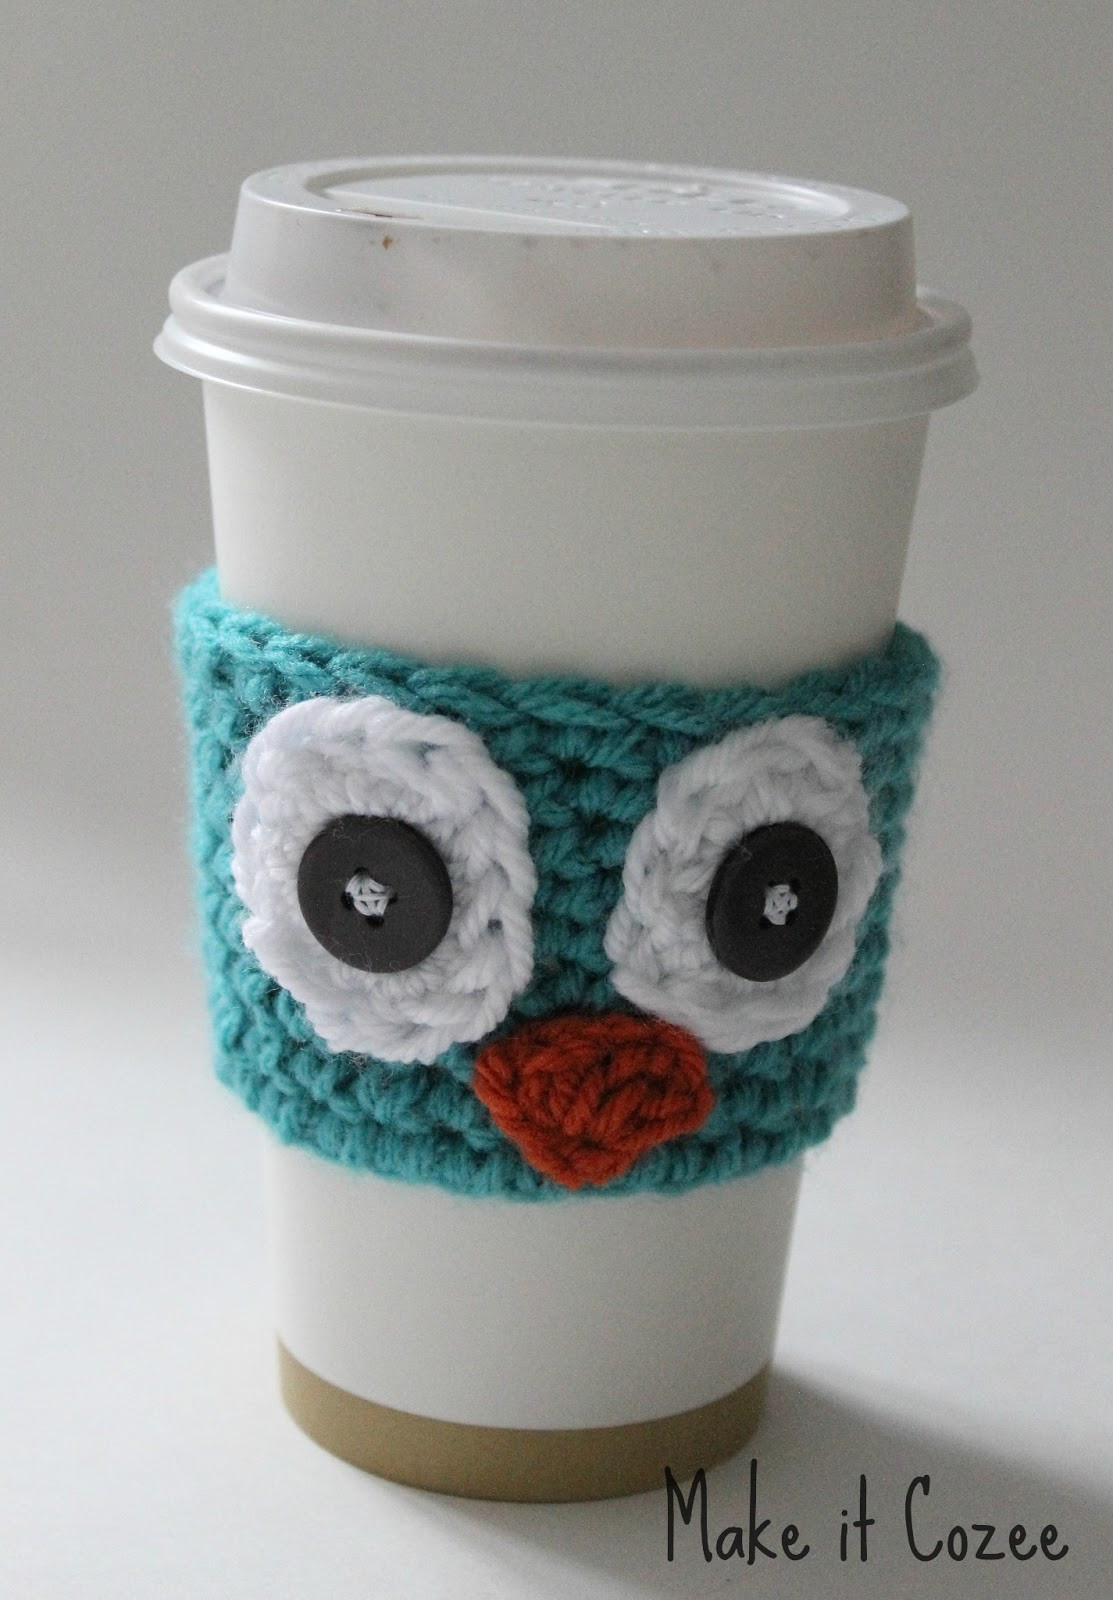 Crochet Coffee Cup Cozy Inspirational Make It Cozee Crochet Owl Coffee Cozy Of Crochet Coffee Cup Cozy Luxury Pdf Crochet Pattern Coffee Mug Cozy with button by